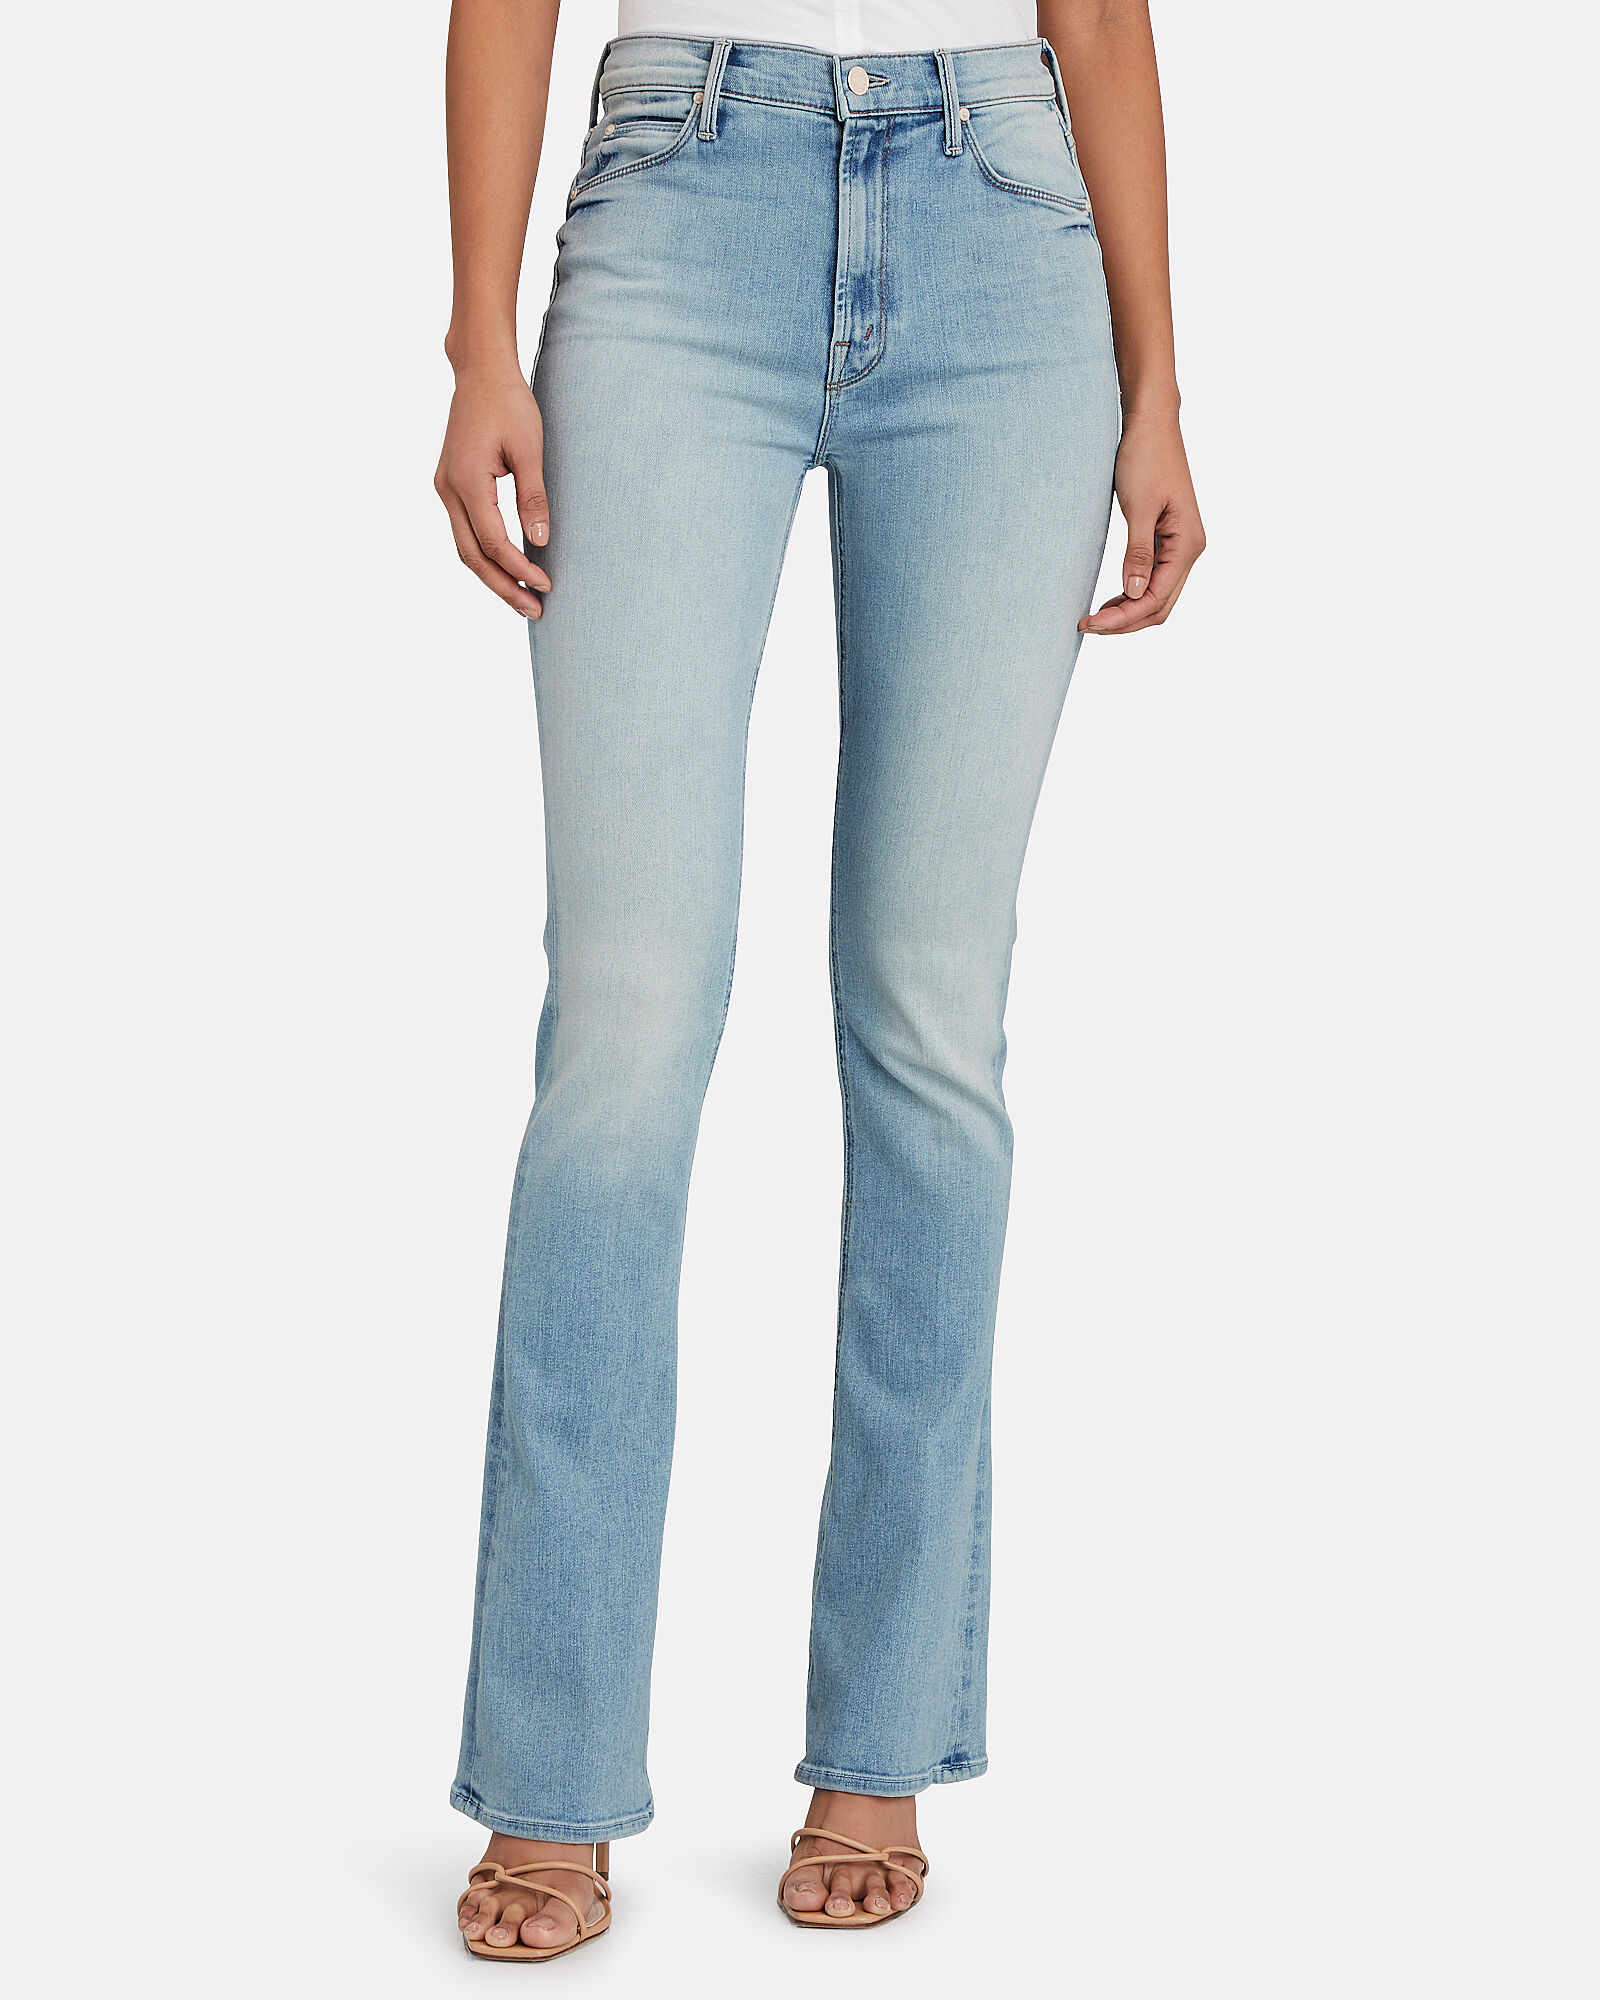 Runway High-Rise Bootcut Jeans, DENIM-LT, hi-res